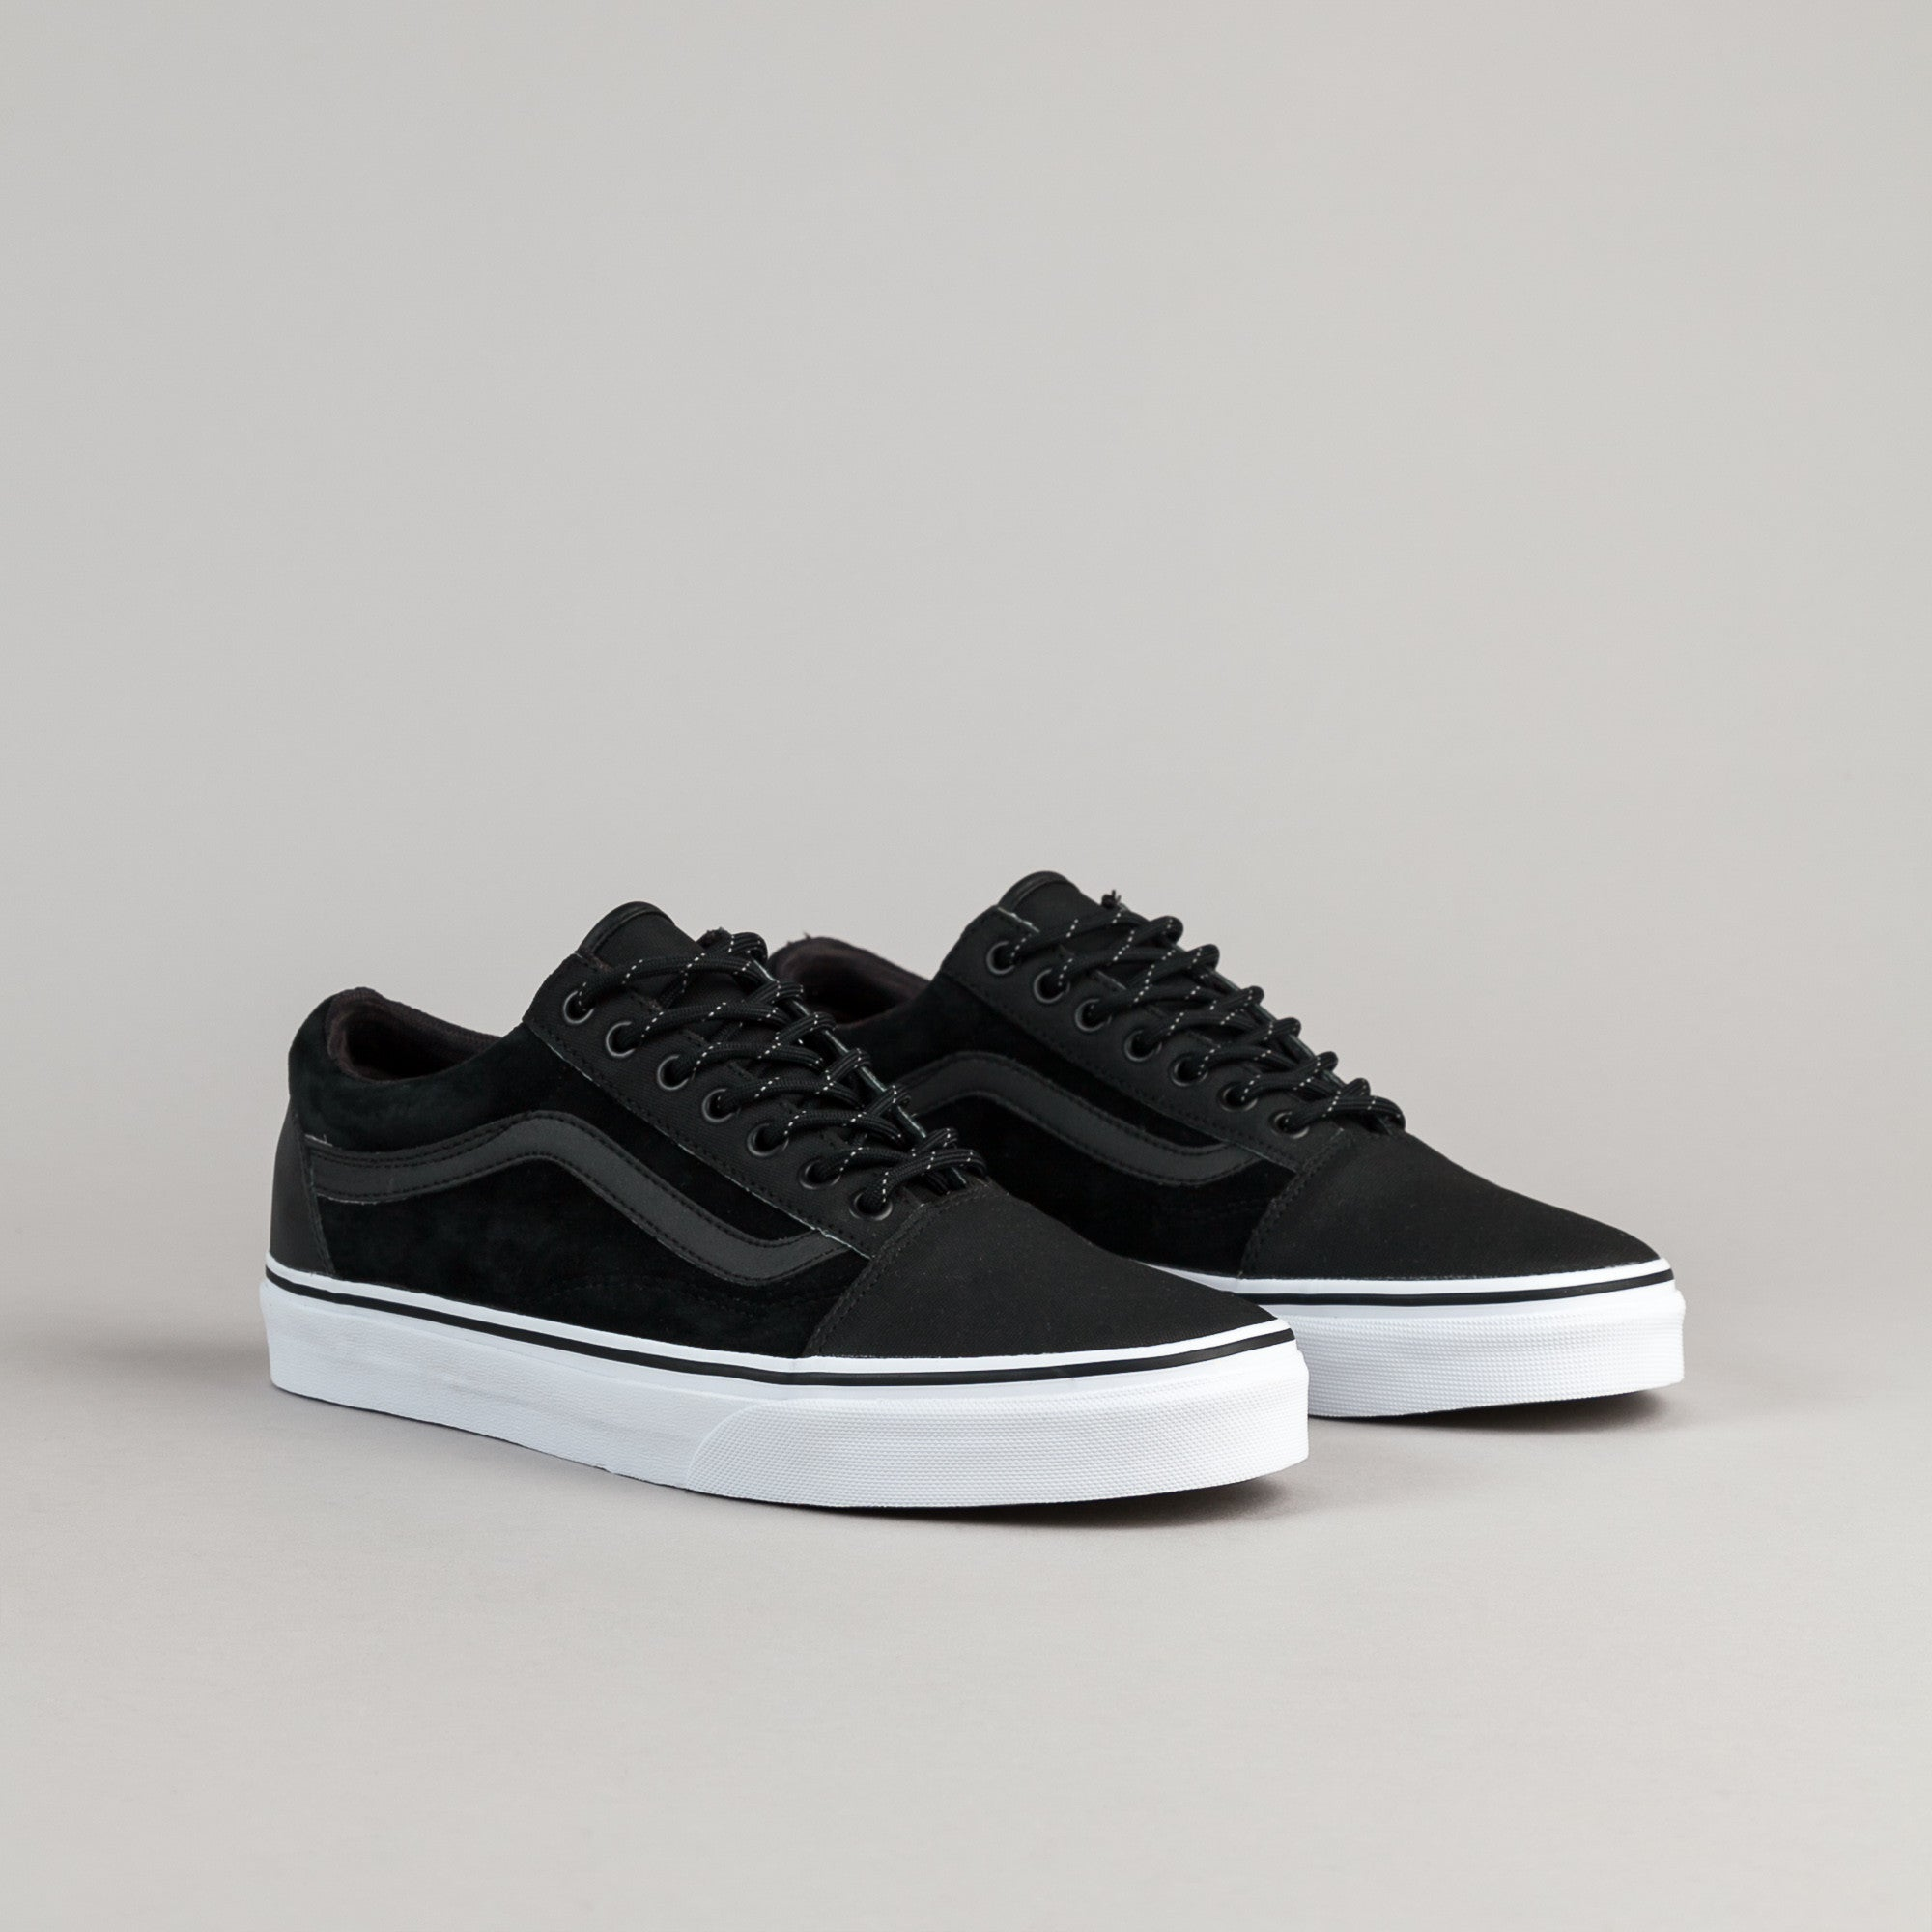 Vans Transit Line Old Skool Reissue DX Shoes - Black / Reflective